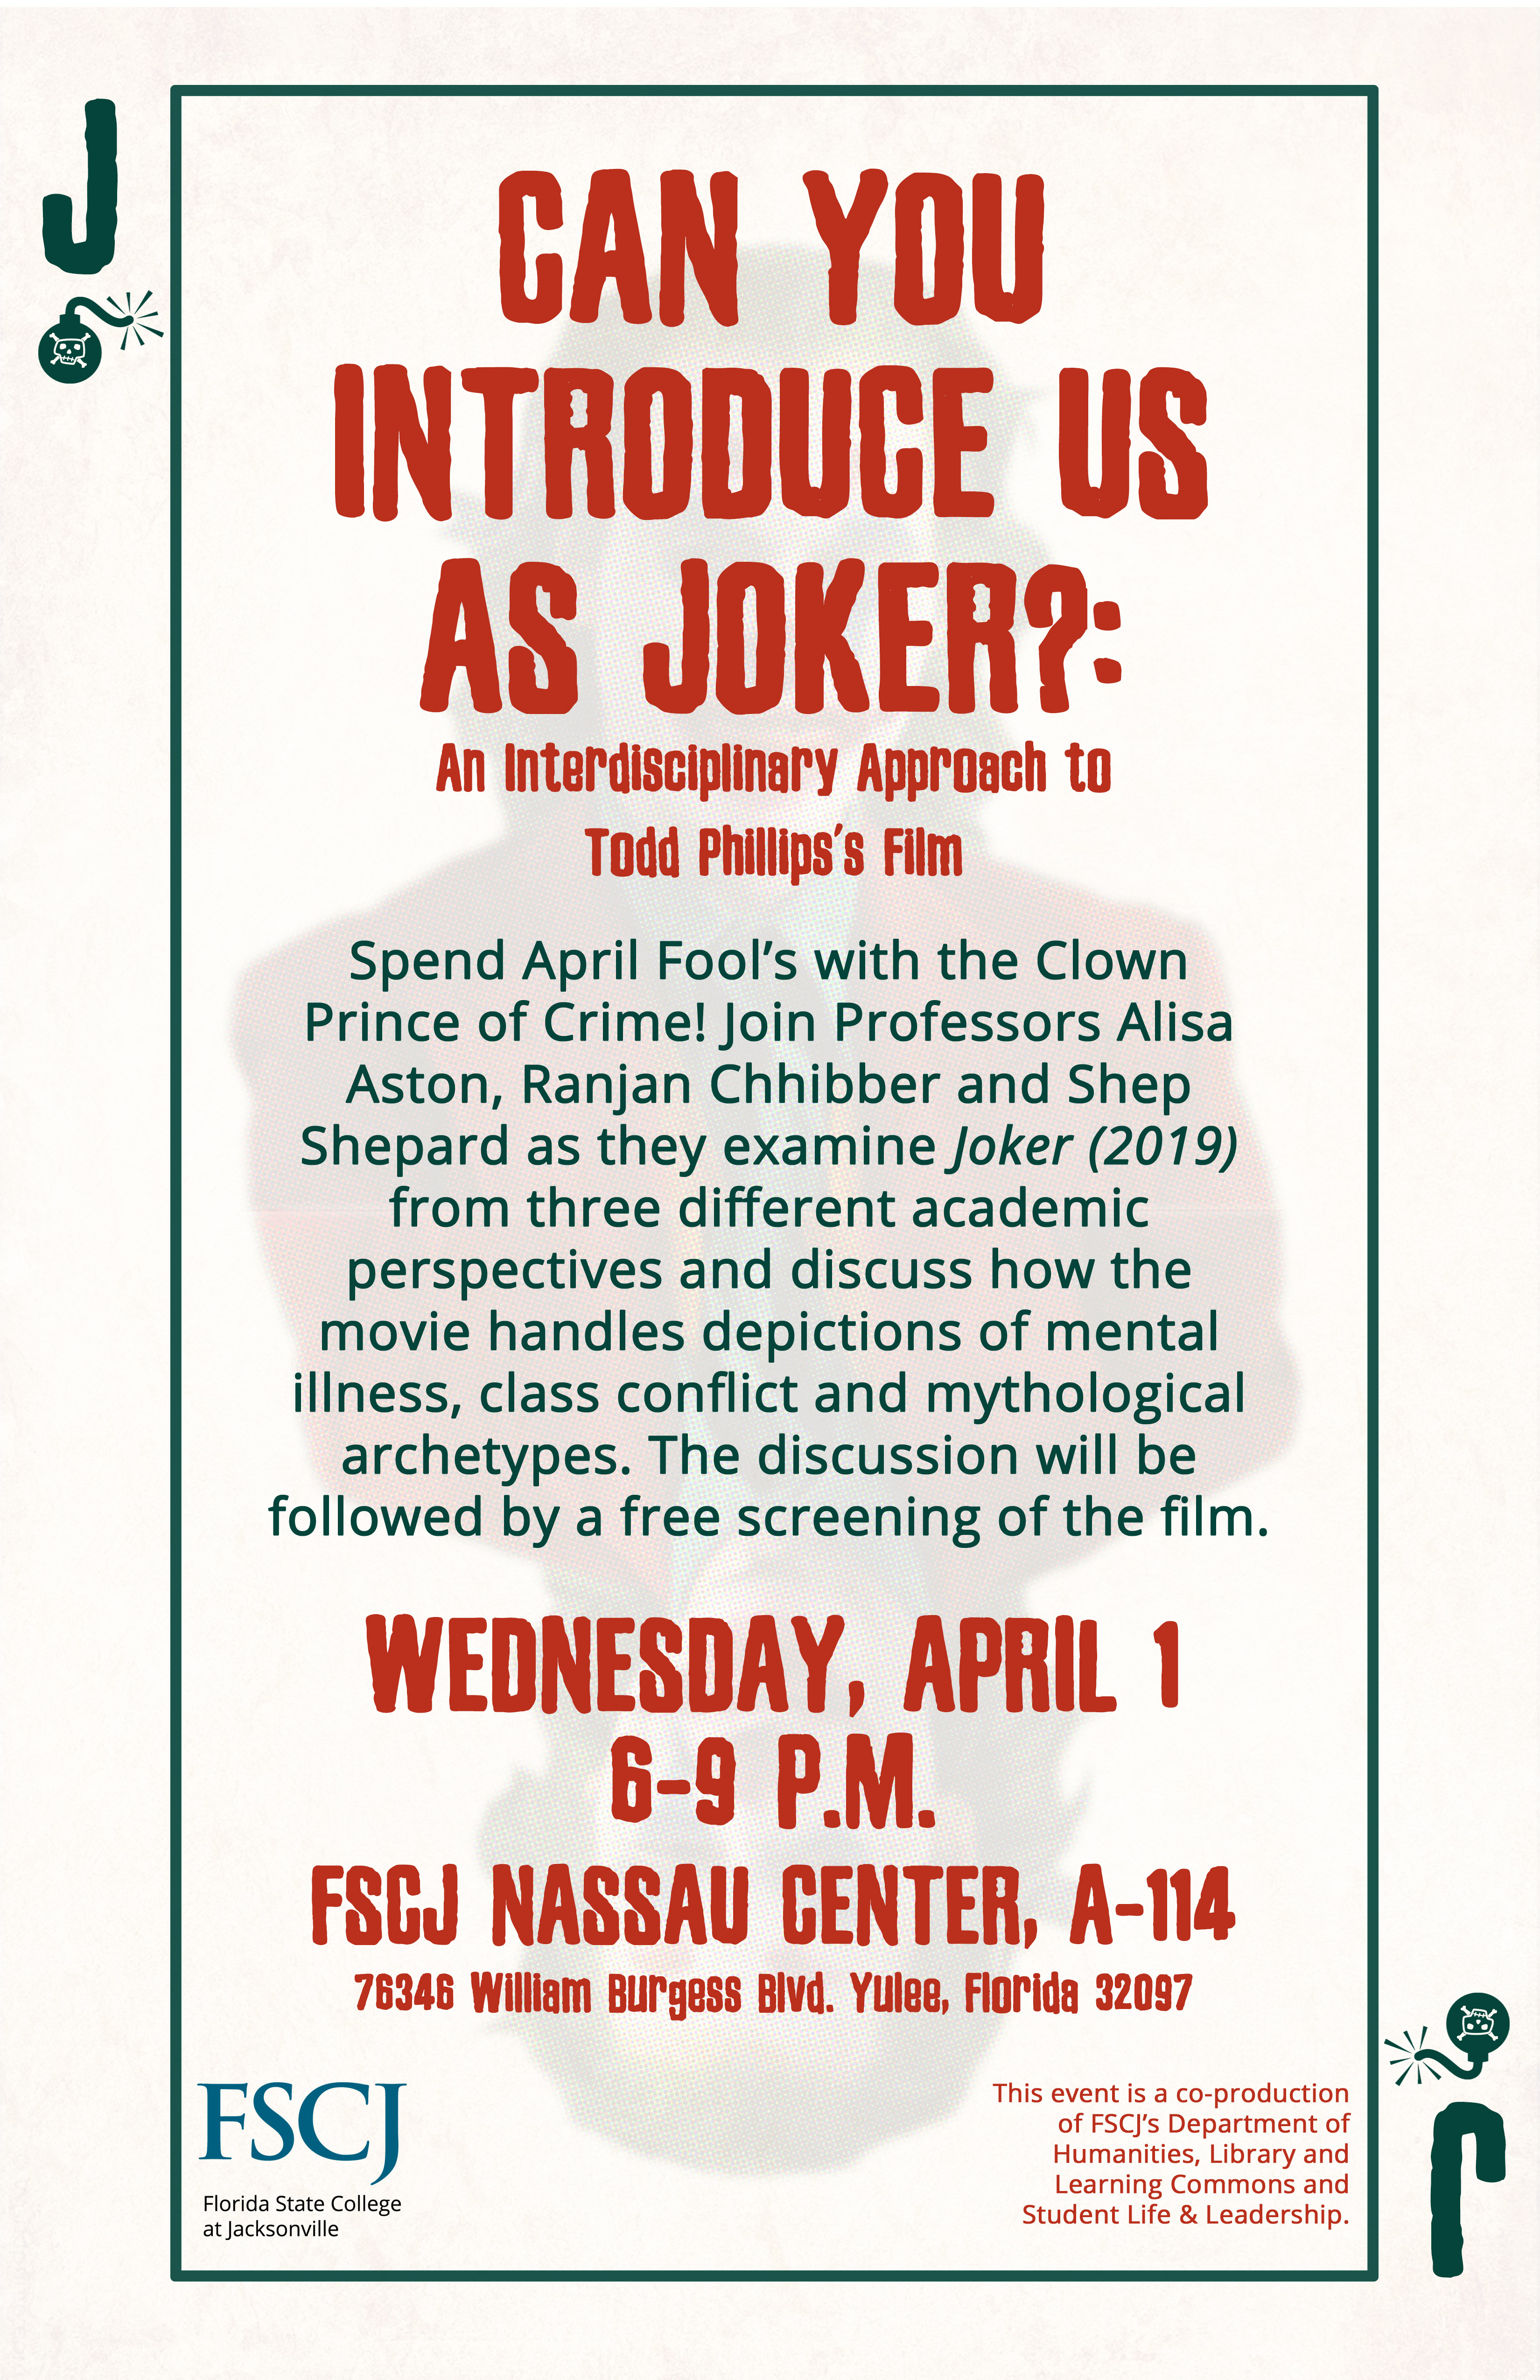 CANCELED: Can You Introduce Us As Joker?: An Interdisciplinary Approach to Todd Phillips's Film